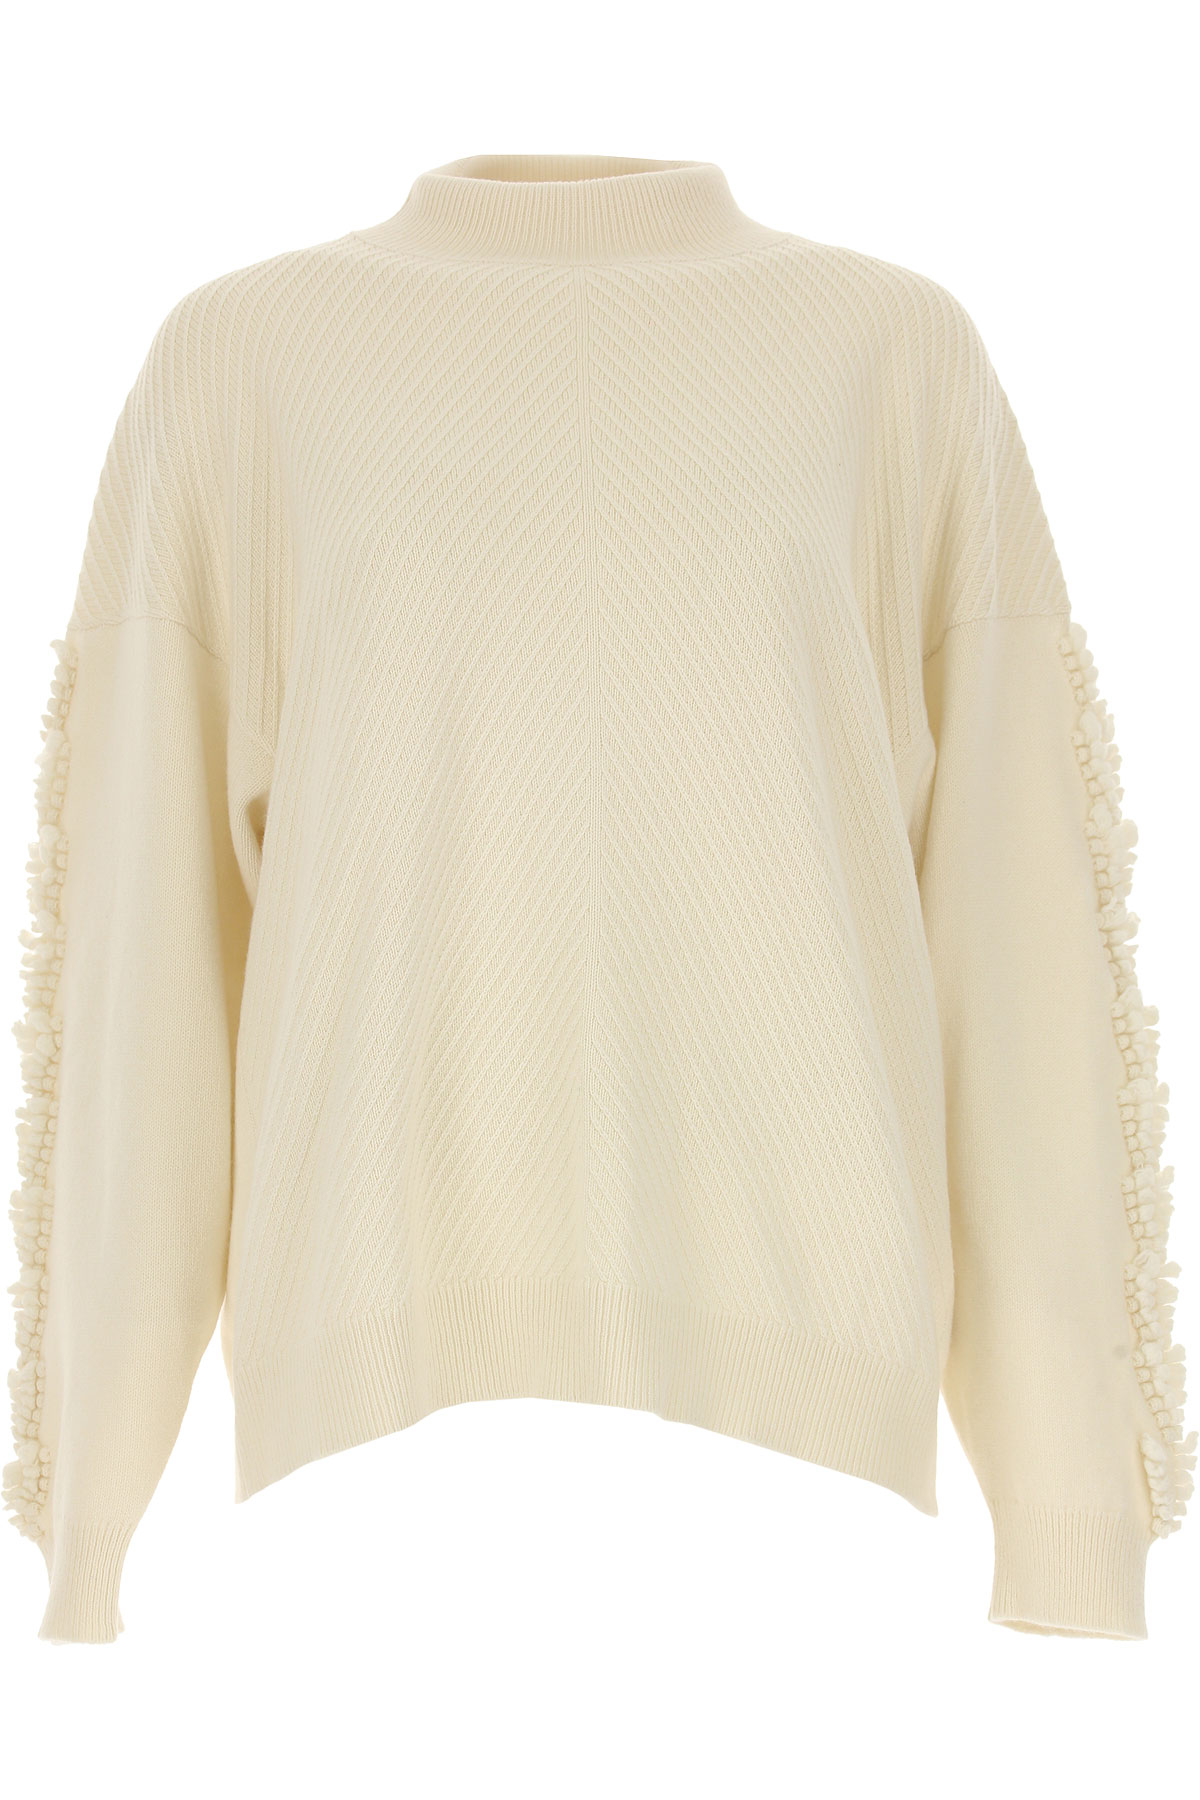 Image of Barrie Sweater for Women Jumper, White, Cashemere, 2017, 2 4